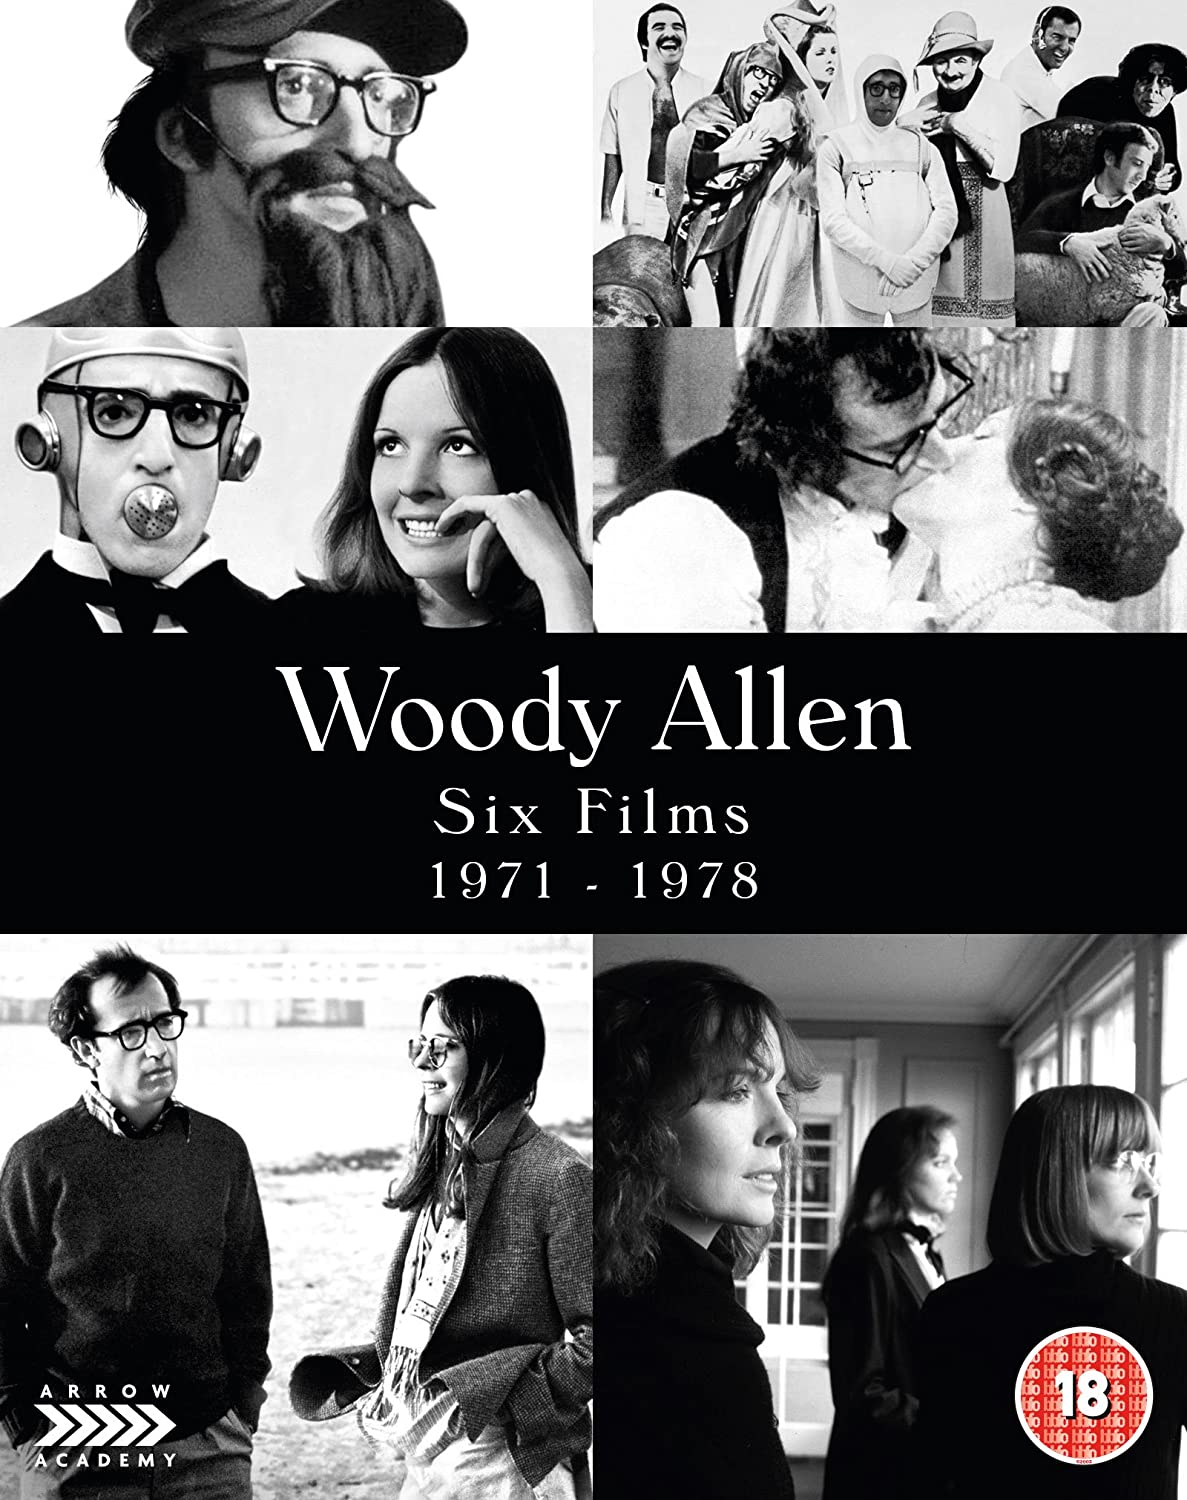 Annie hall review black sheep reviews - Woody Allen Six Films 1971 1978 Blu Ray Amazon Co Uk Woody Allen Diane Keaton Charlotte Rampling Dvd Blu Ray